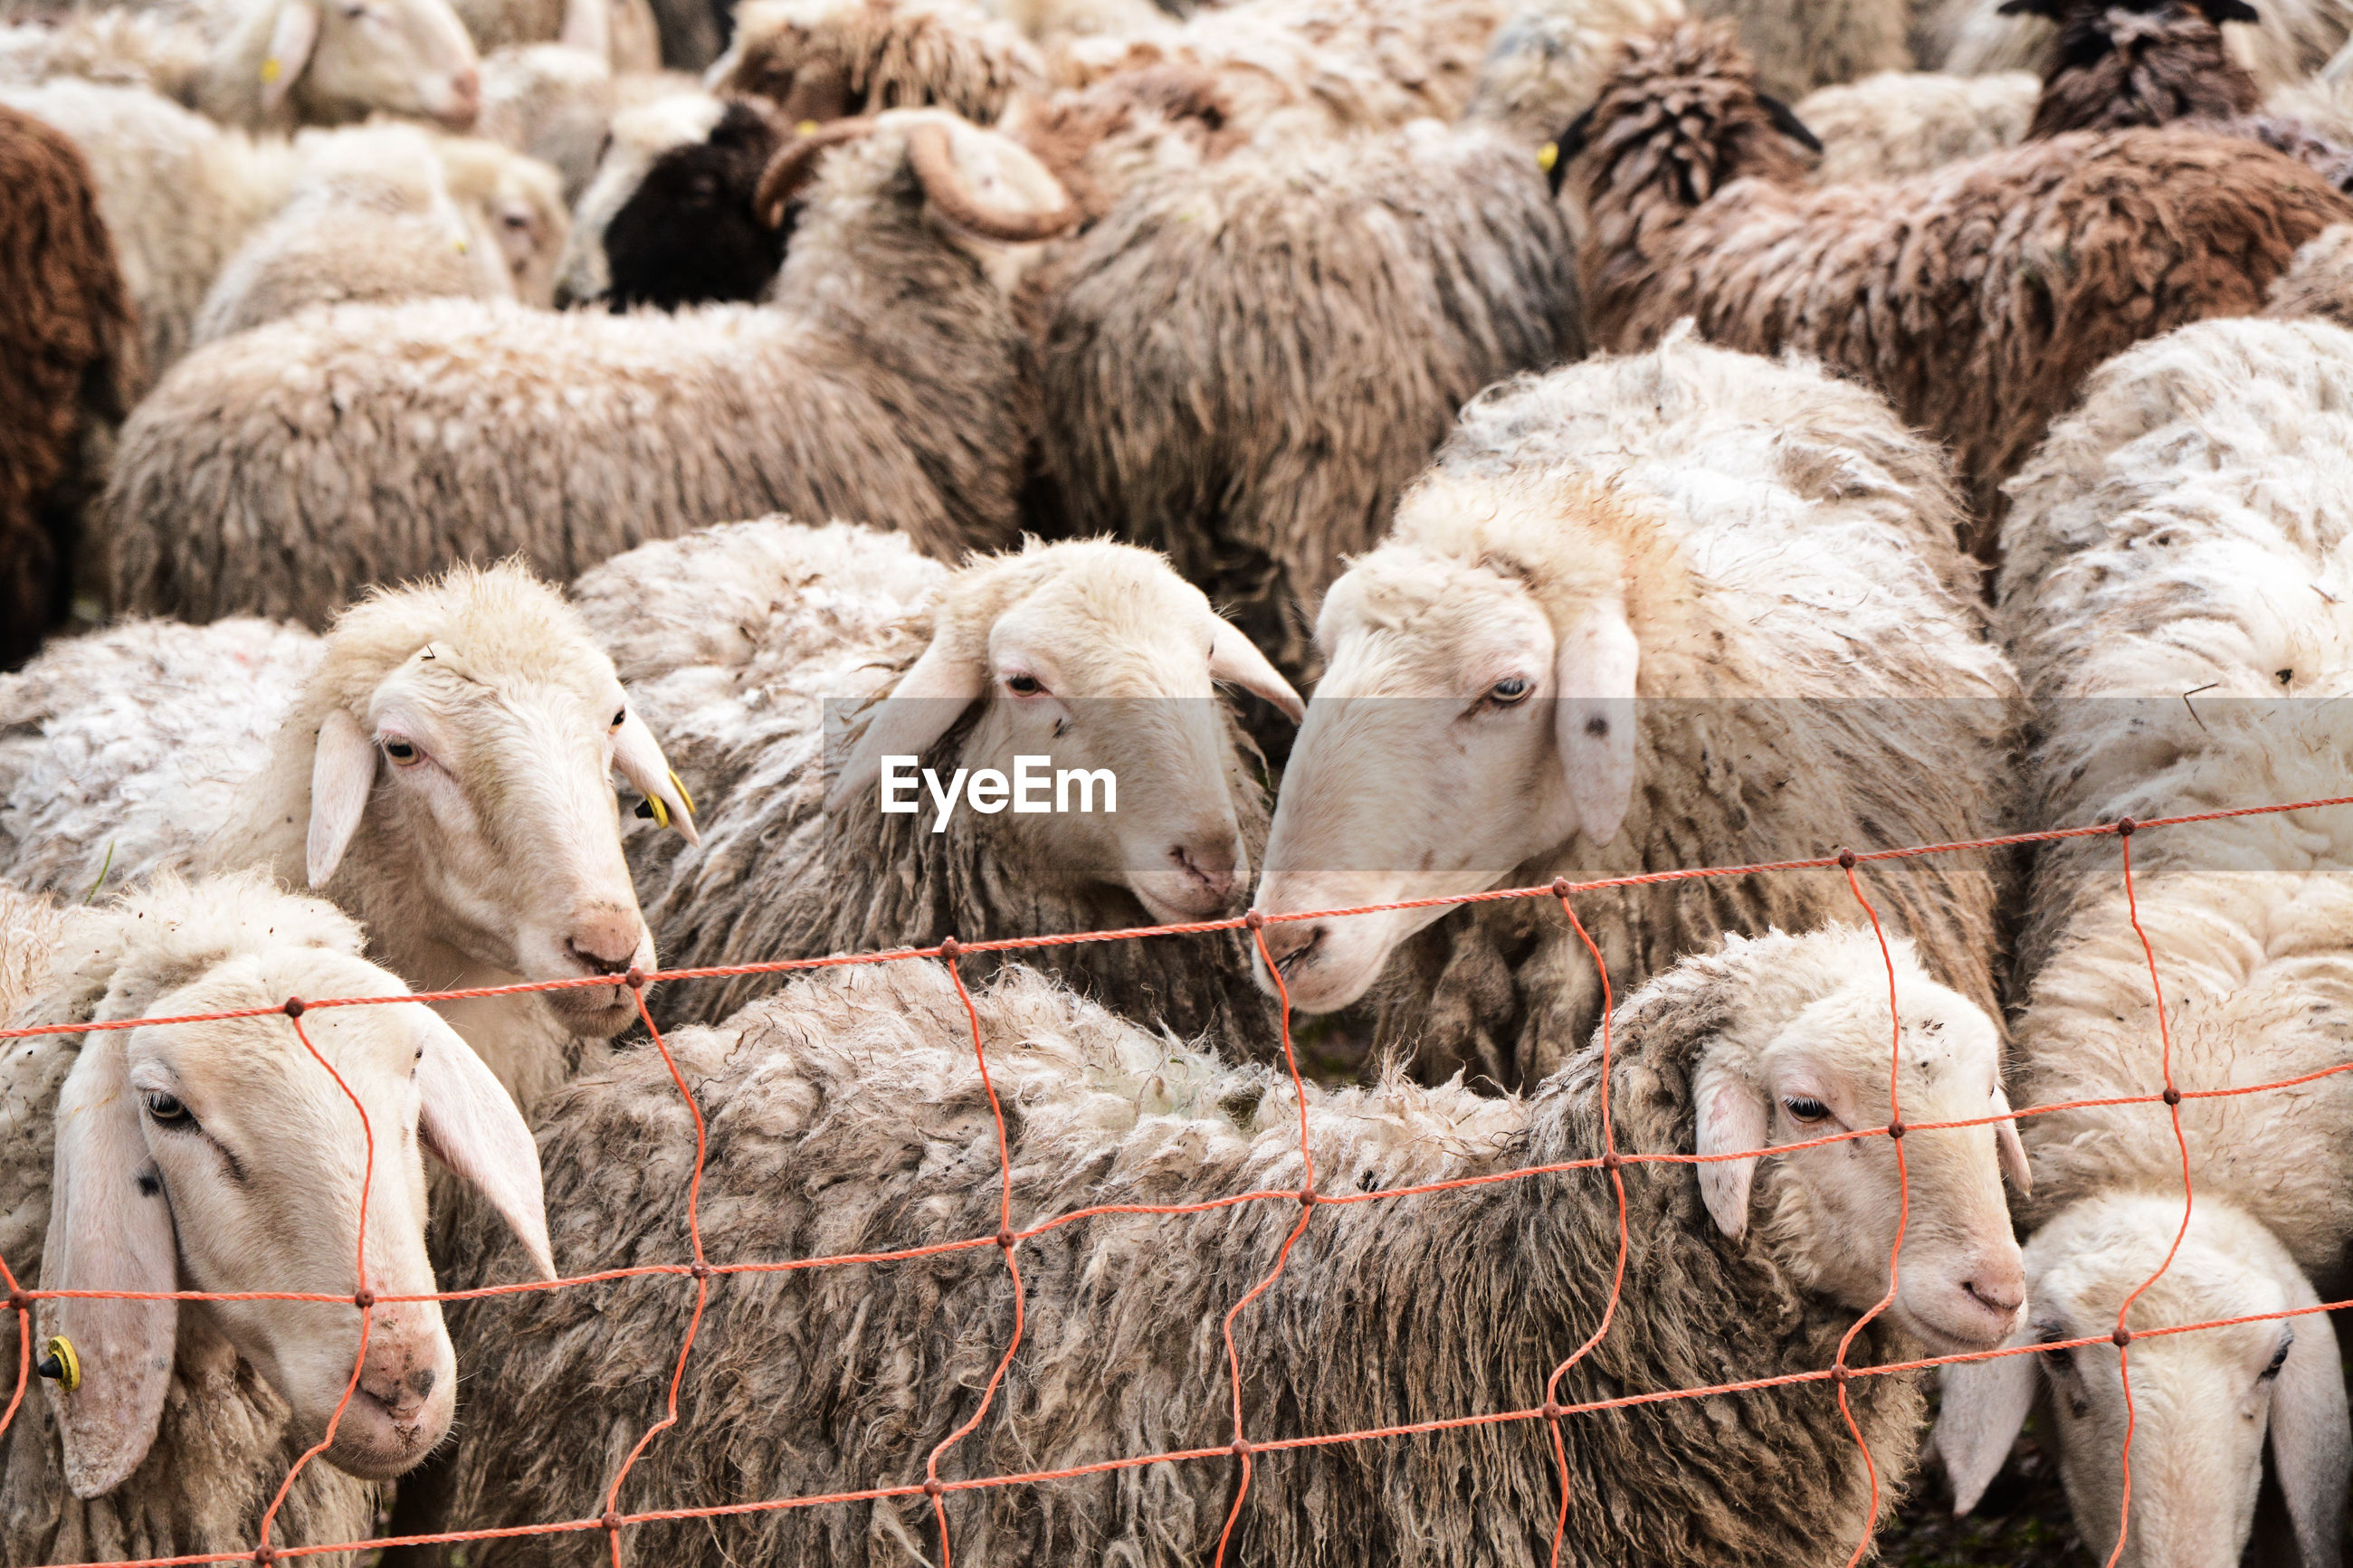 Flock of sheep in a field in albate, como, lombardy, italy.